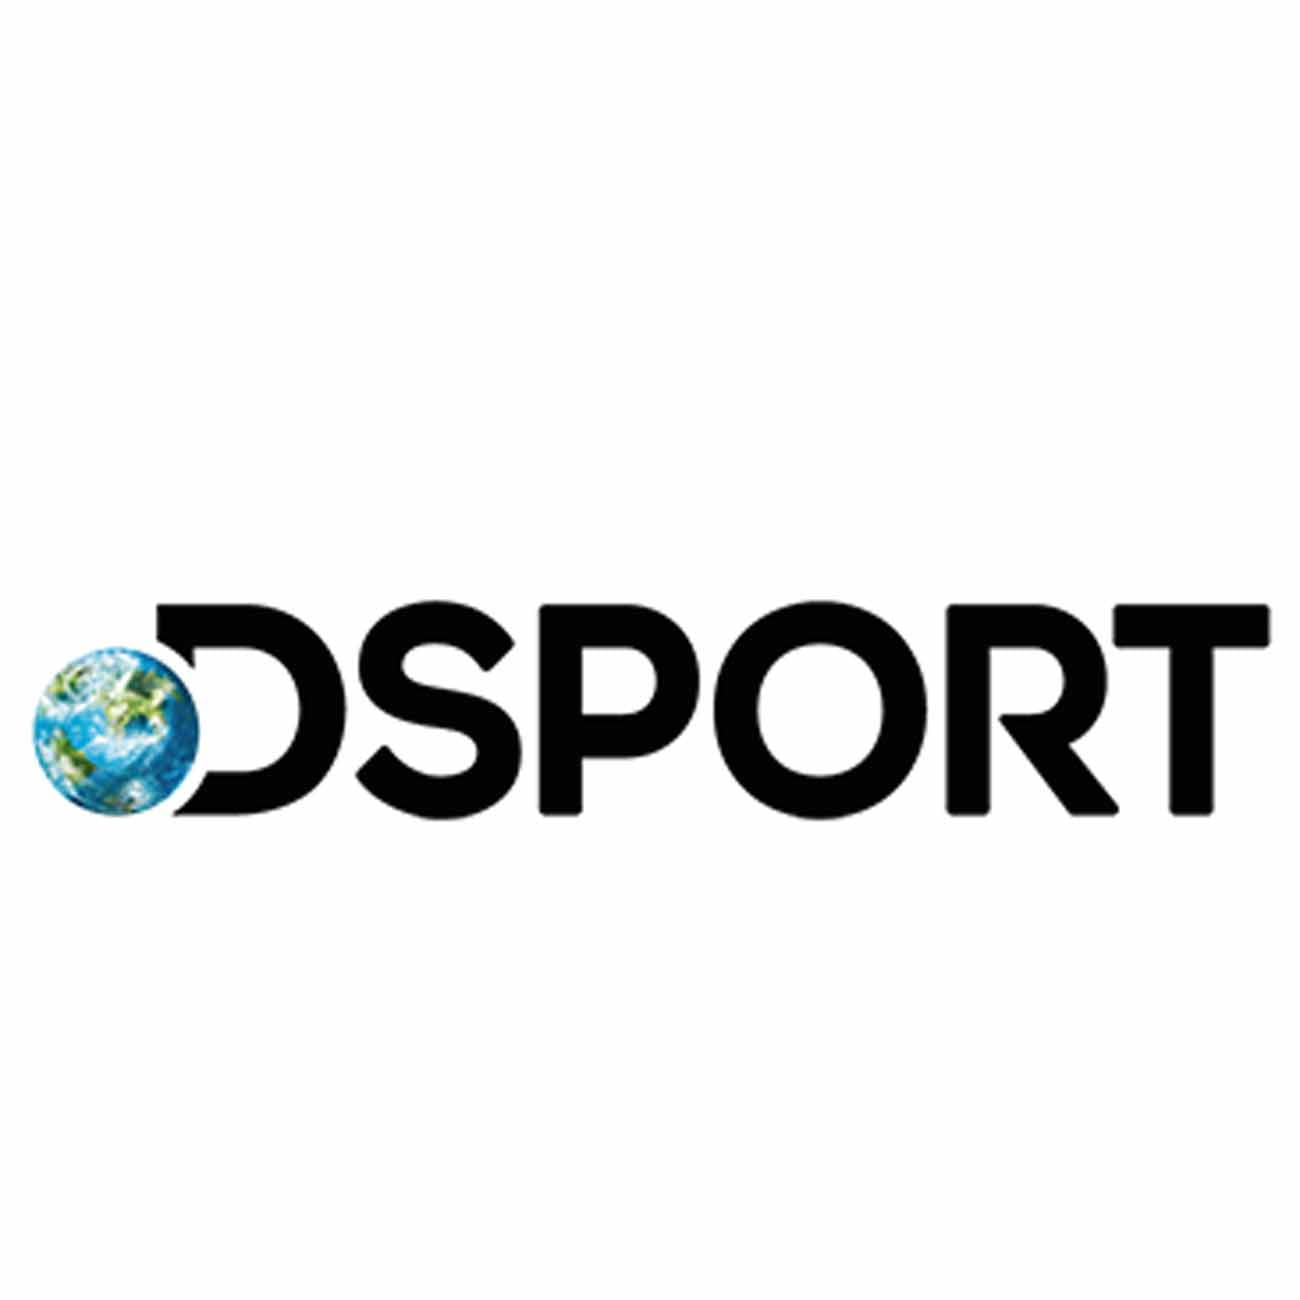 Discovery attempt to rename DSport as Eurosport in India challenged by Lex Sportel Vision in Delhi High Court